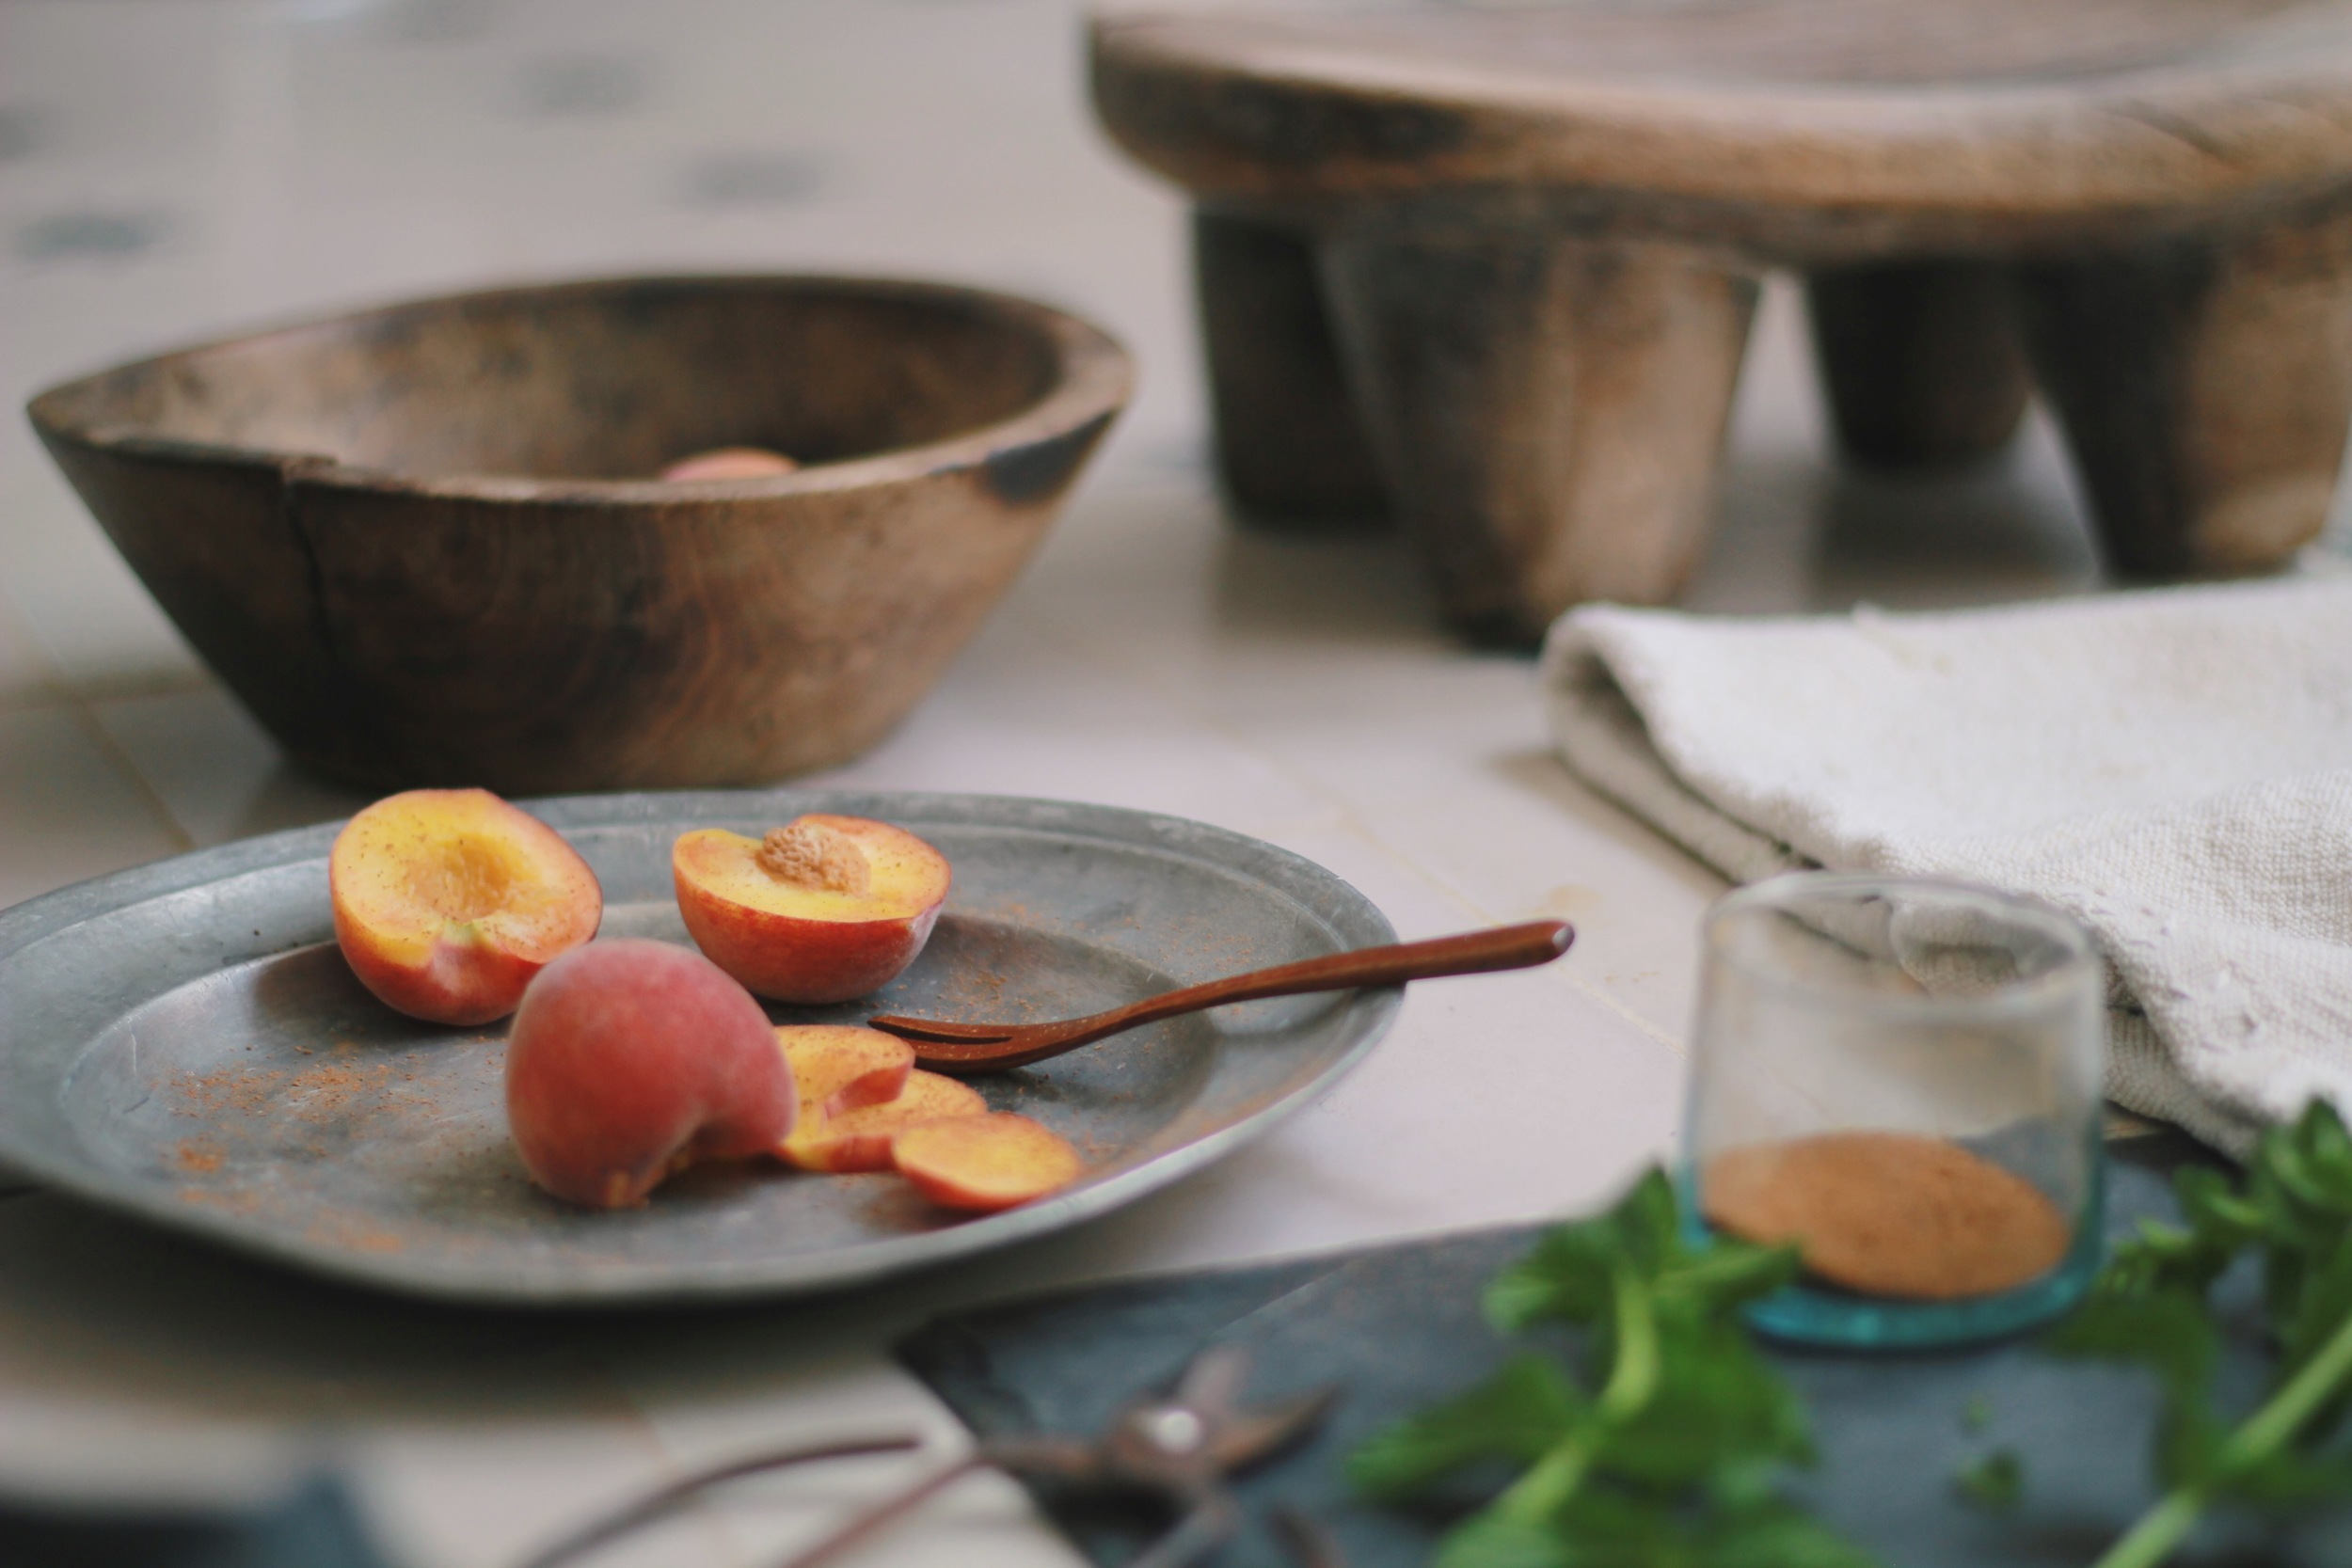 stunning and perfectly ripe peaches dusted in cinnamon